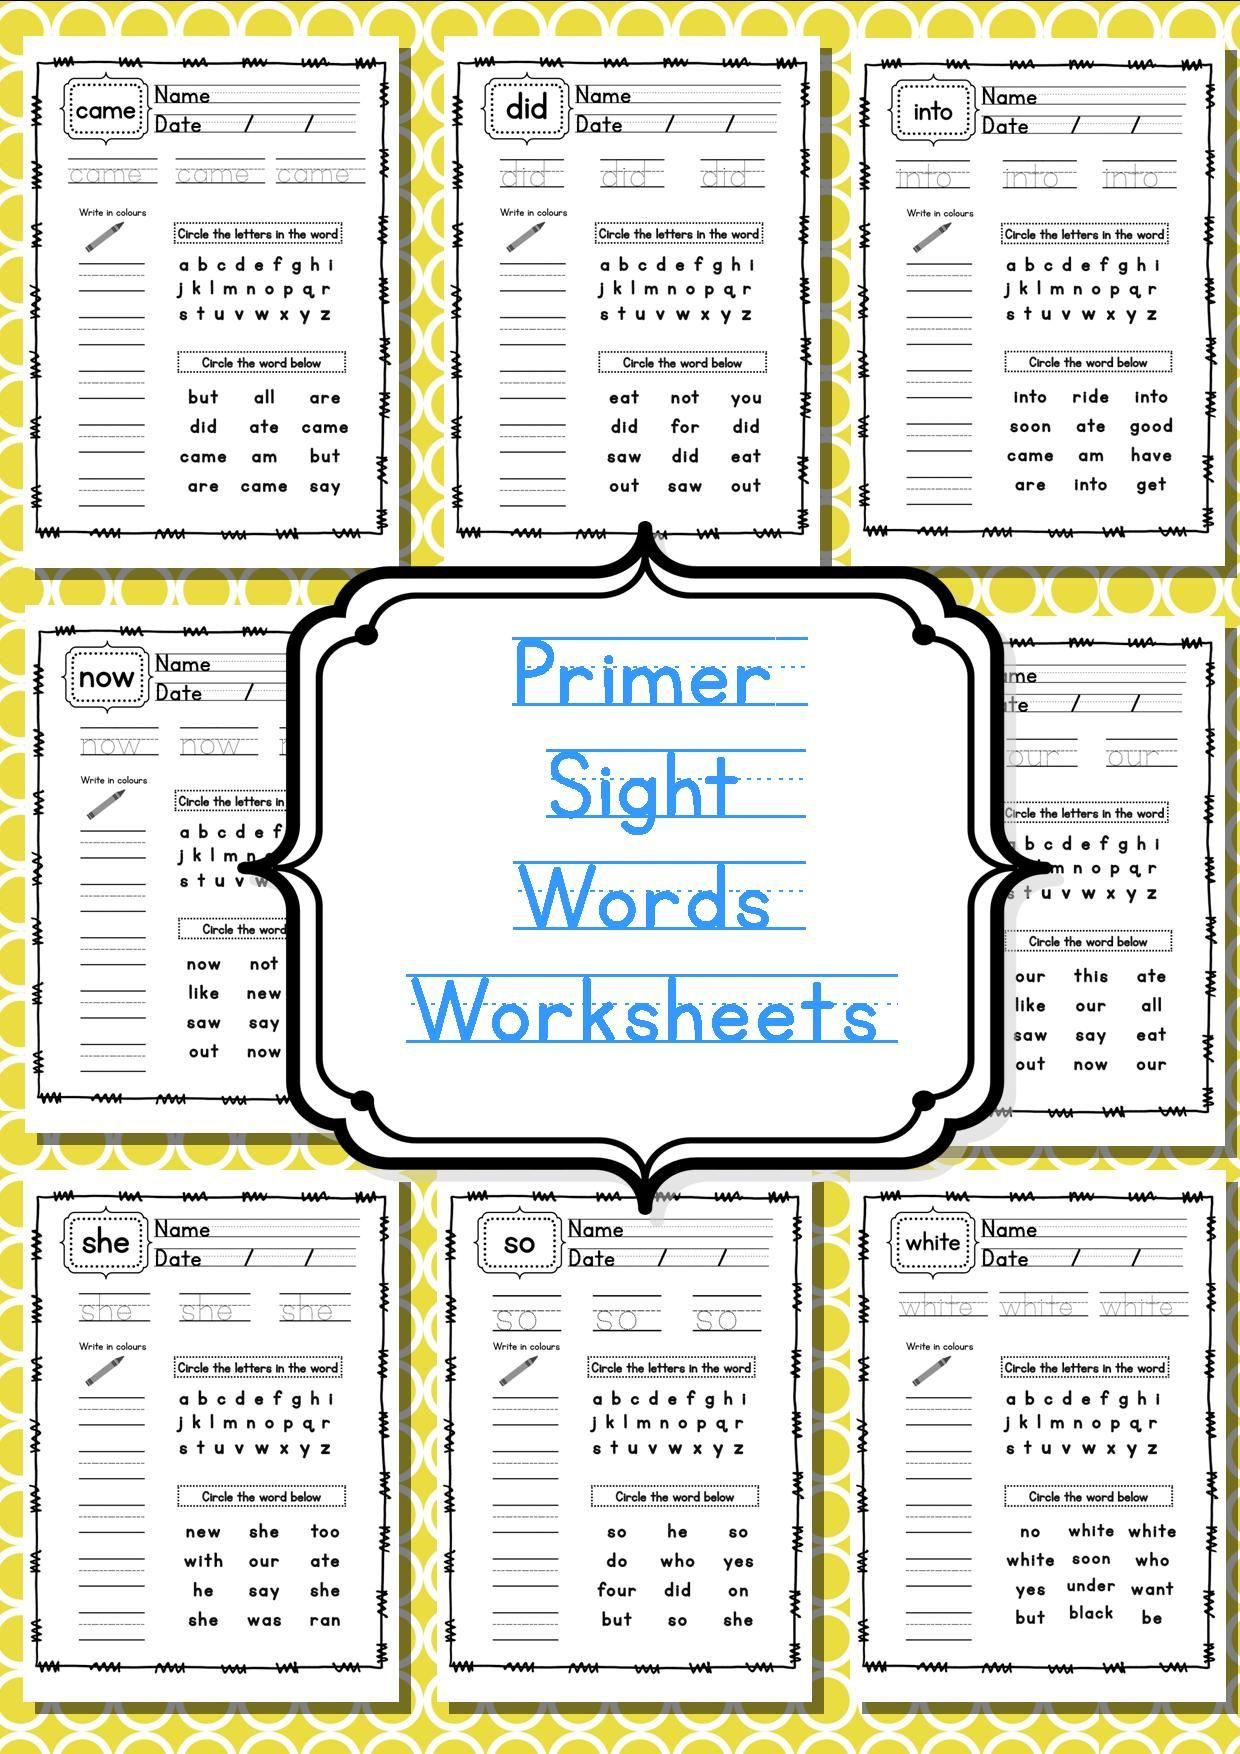 Primer Sight Word Worksheets Sight words list and Worksheets